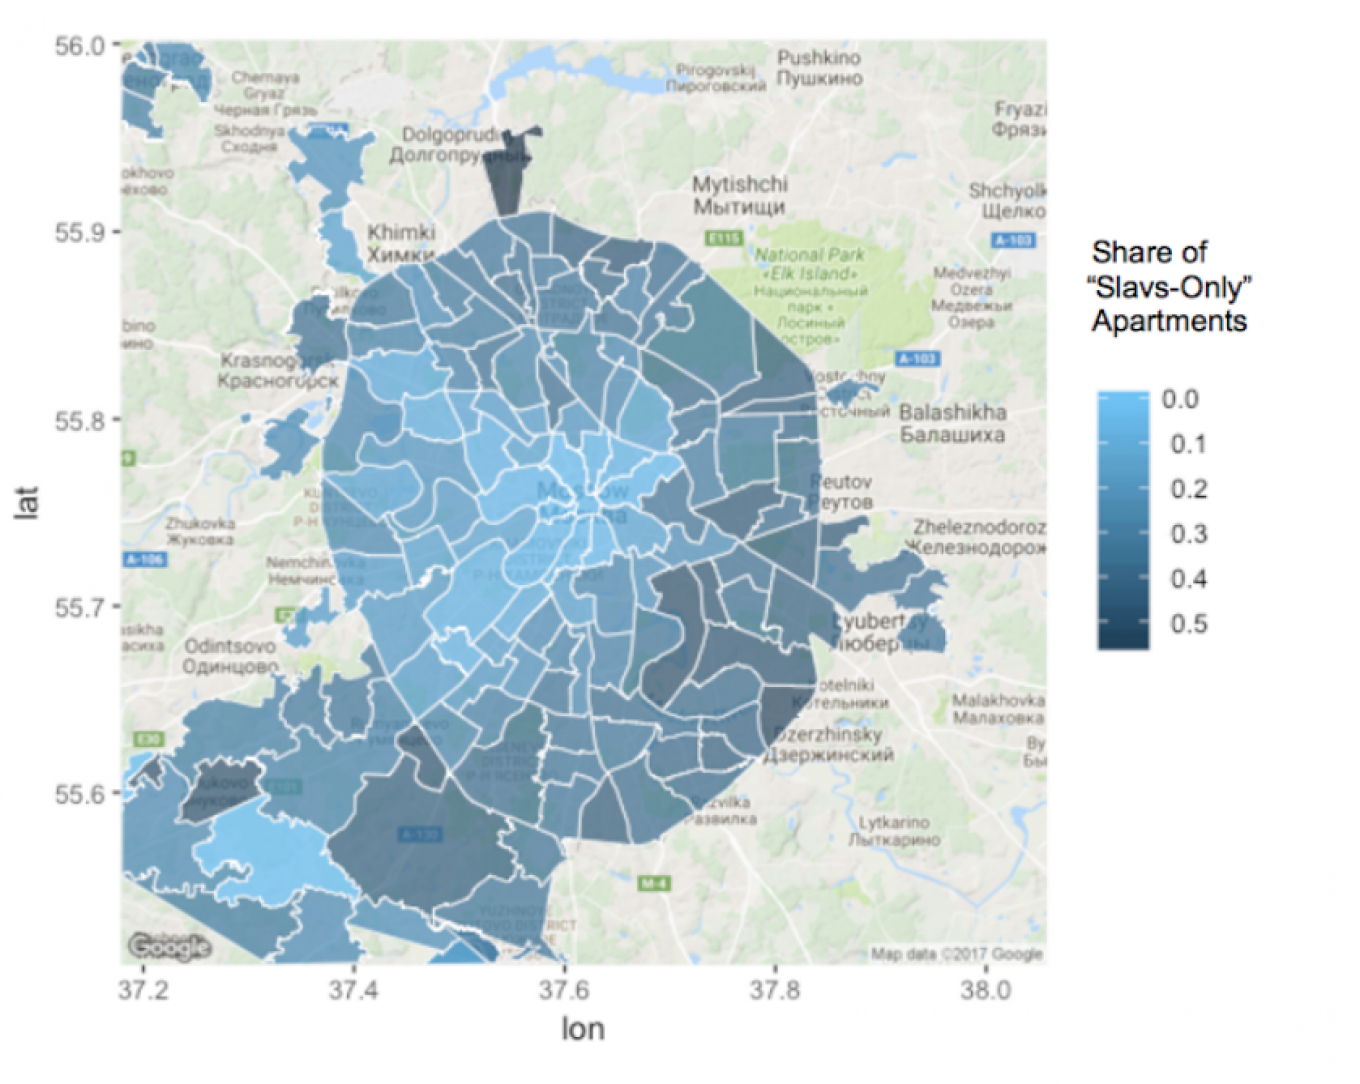 The percentage of apartment listings which specify the race of potential tenants, divided by neighborhood. Robustory